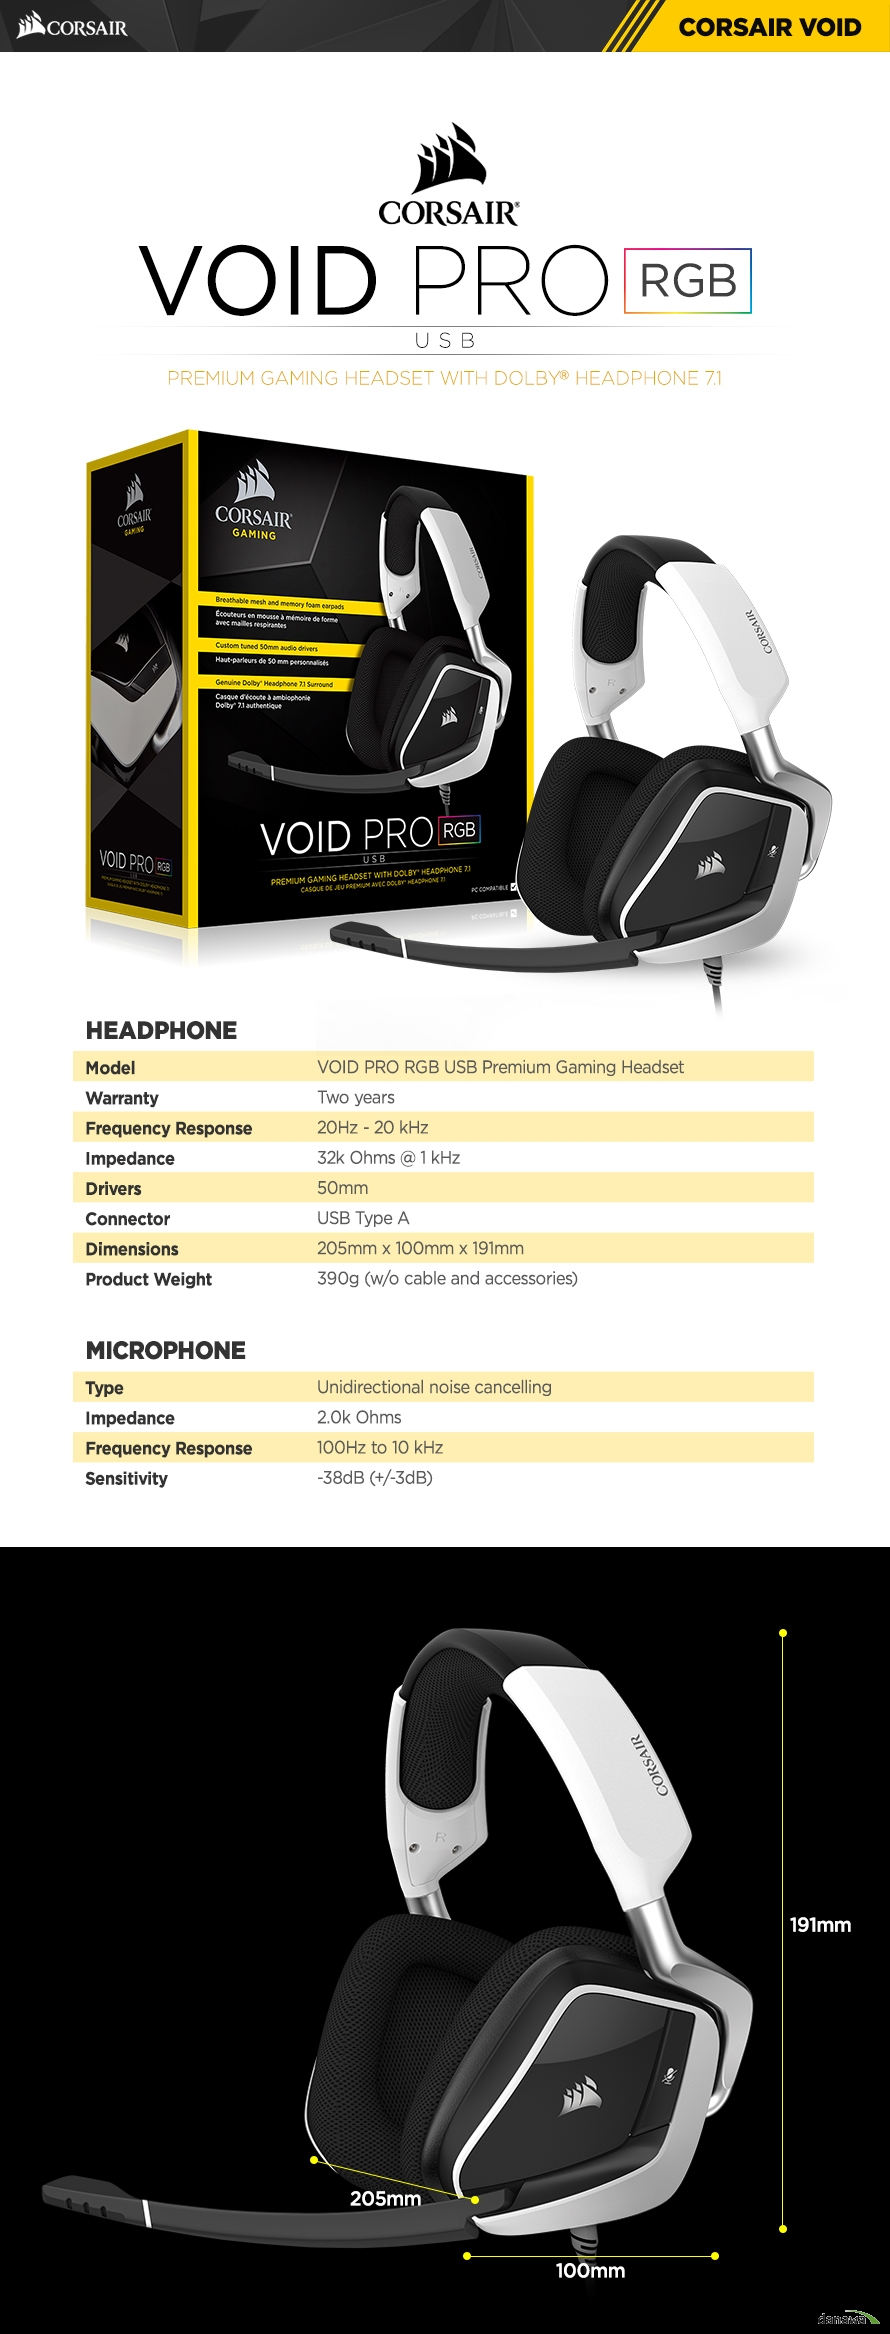 HEADPHONE	Model	VOID PRO RGB USB Premium Gaming HeadsetWarranty	Two yearsFrequency Response	20Hz - 20 kHzImpedance	32k Ohms @ 1 kHzDrivers	50mmConnector	USB Type ADimensions	205mm x 100mm x 191mmProduct Weight	390g (w/o cable and accessories)	MICROPHONE	Type	Unidirectional noise cancellingImpedance	2.0k OhmsFrequency Response	100Hz to 10 kHzSensitivity	-38dB (+/-3dB)